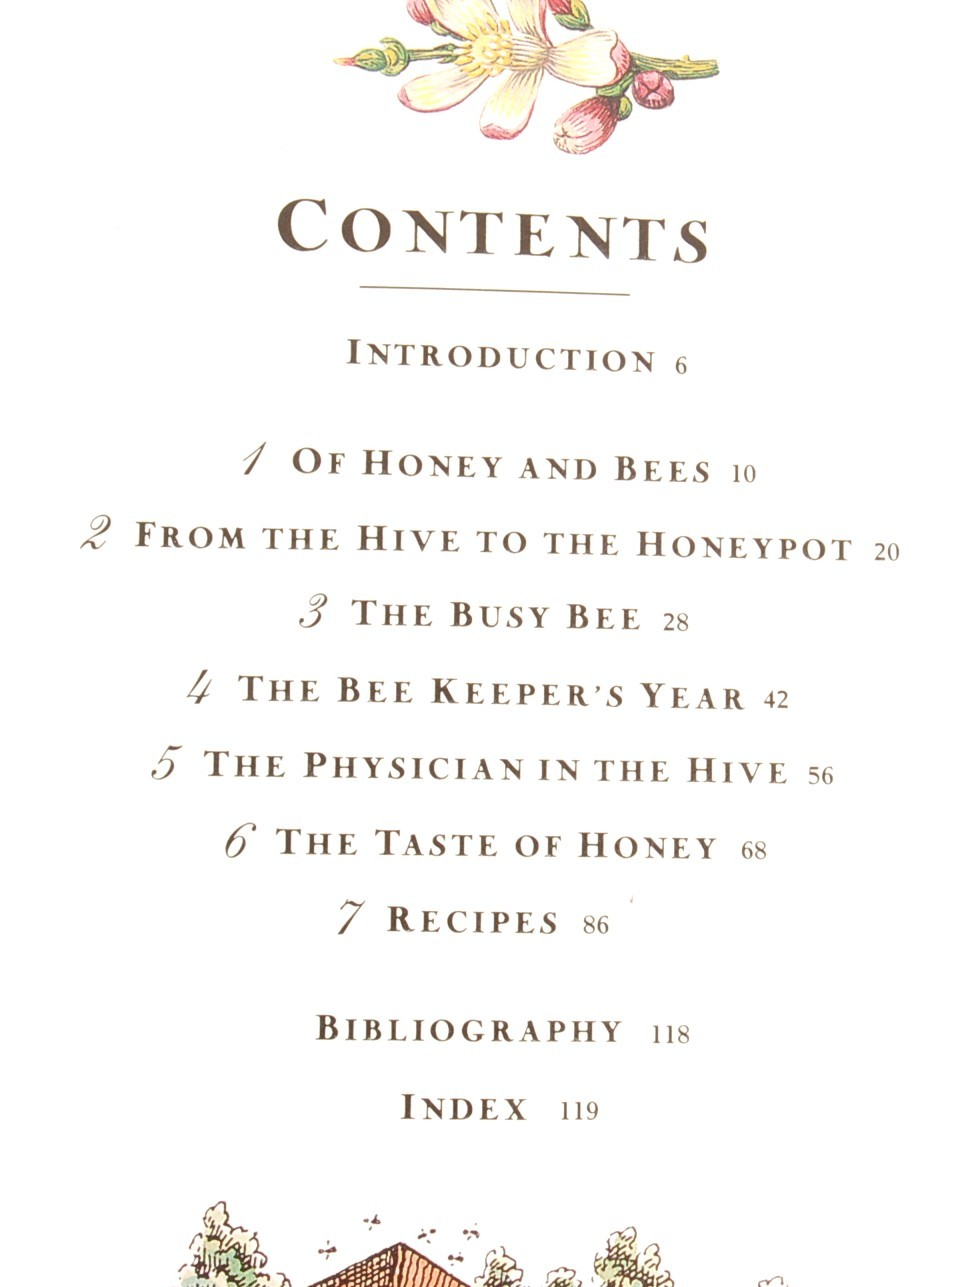 Honey From Hive to Honeypot Sue Style Cookbook Recipes History of Honey Bees